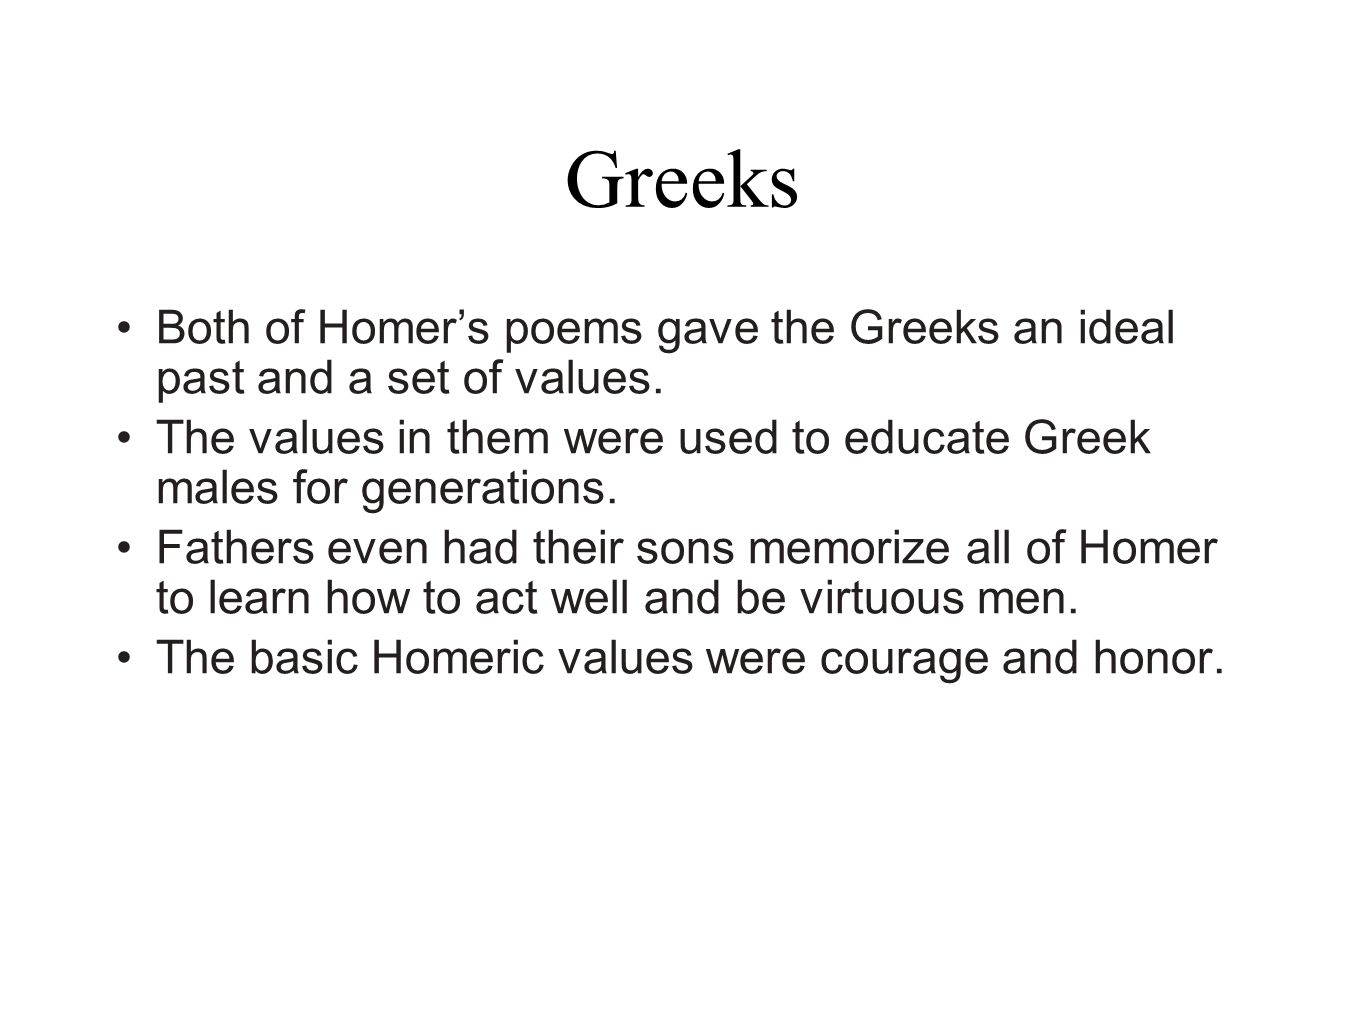 GreeksBoth of Homer's poems gave the Greeks an ideal past and a set of values.